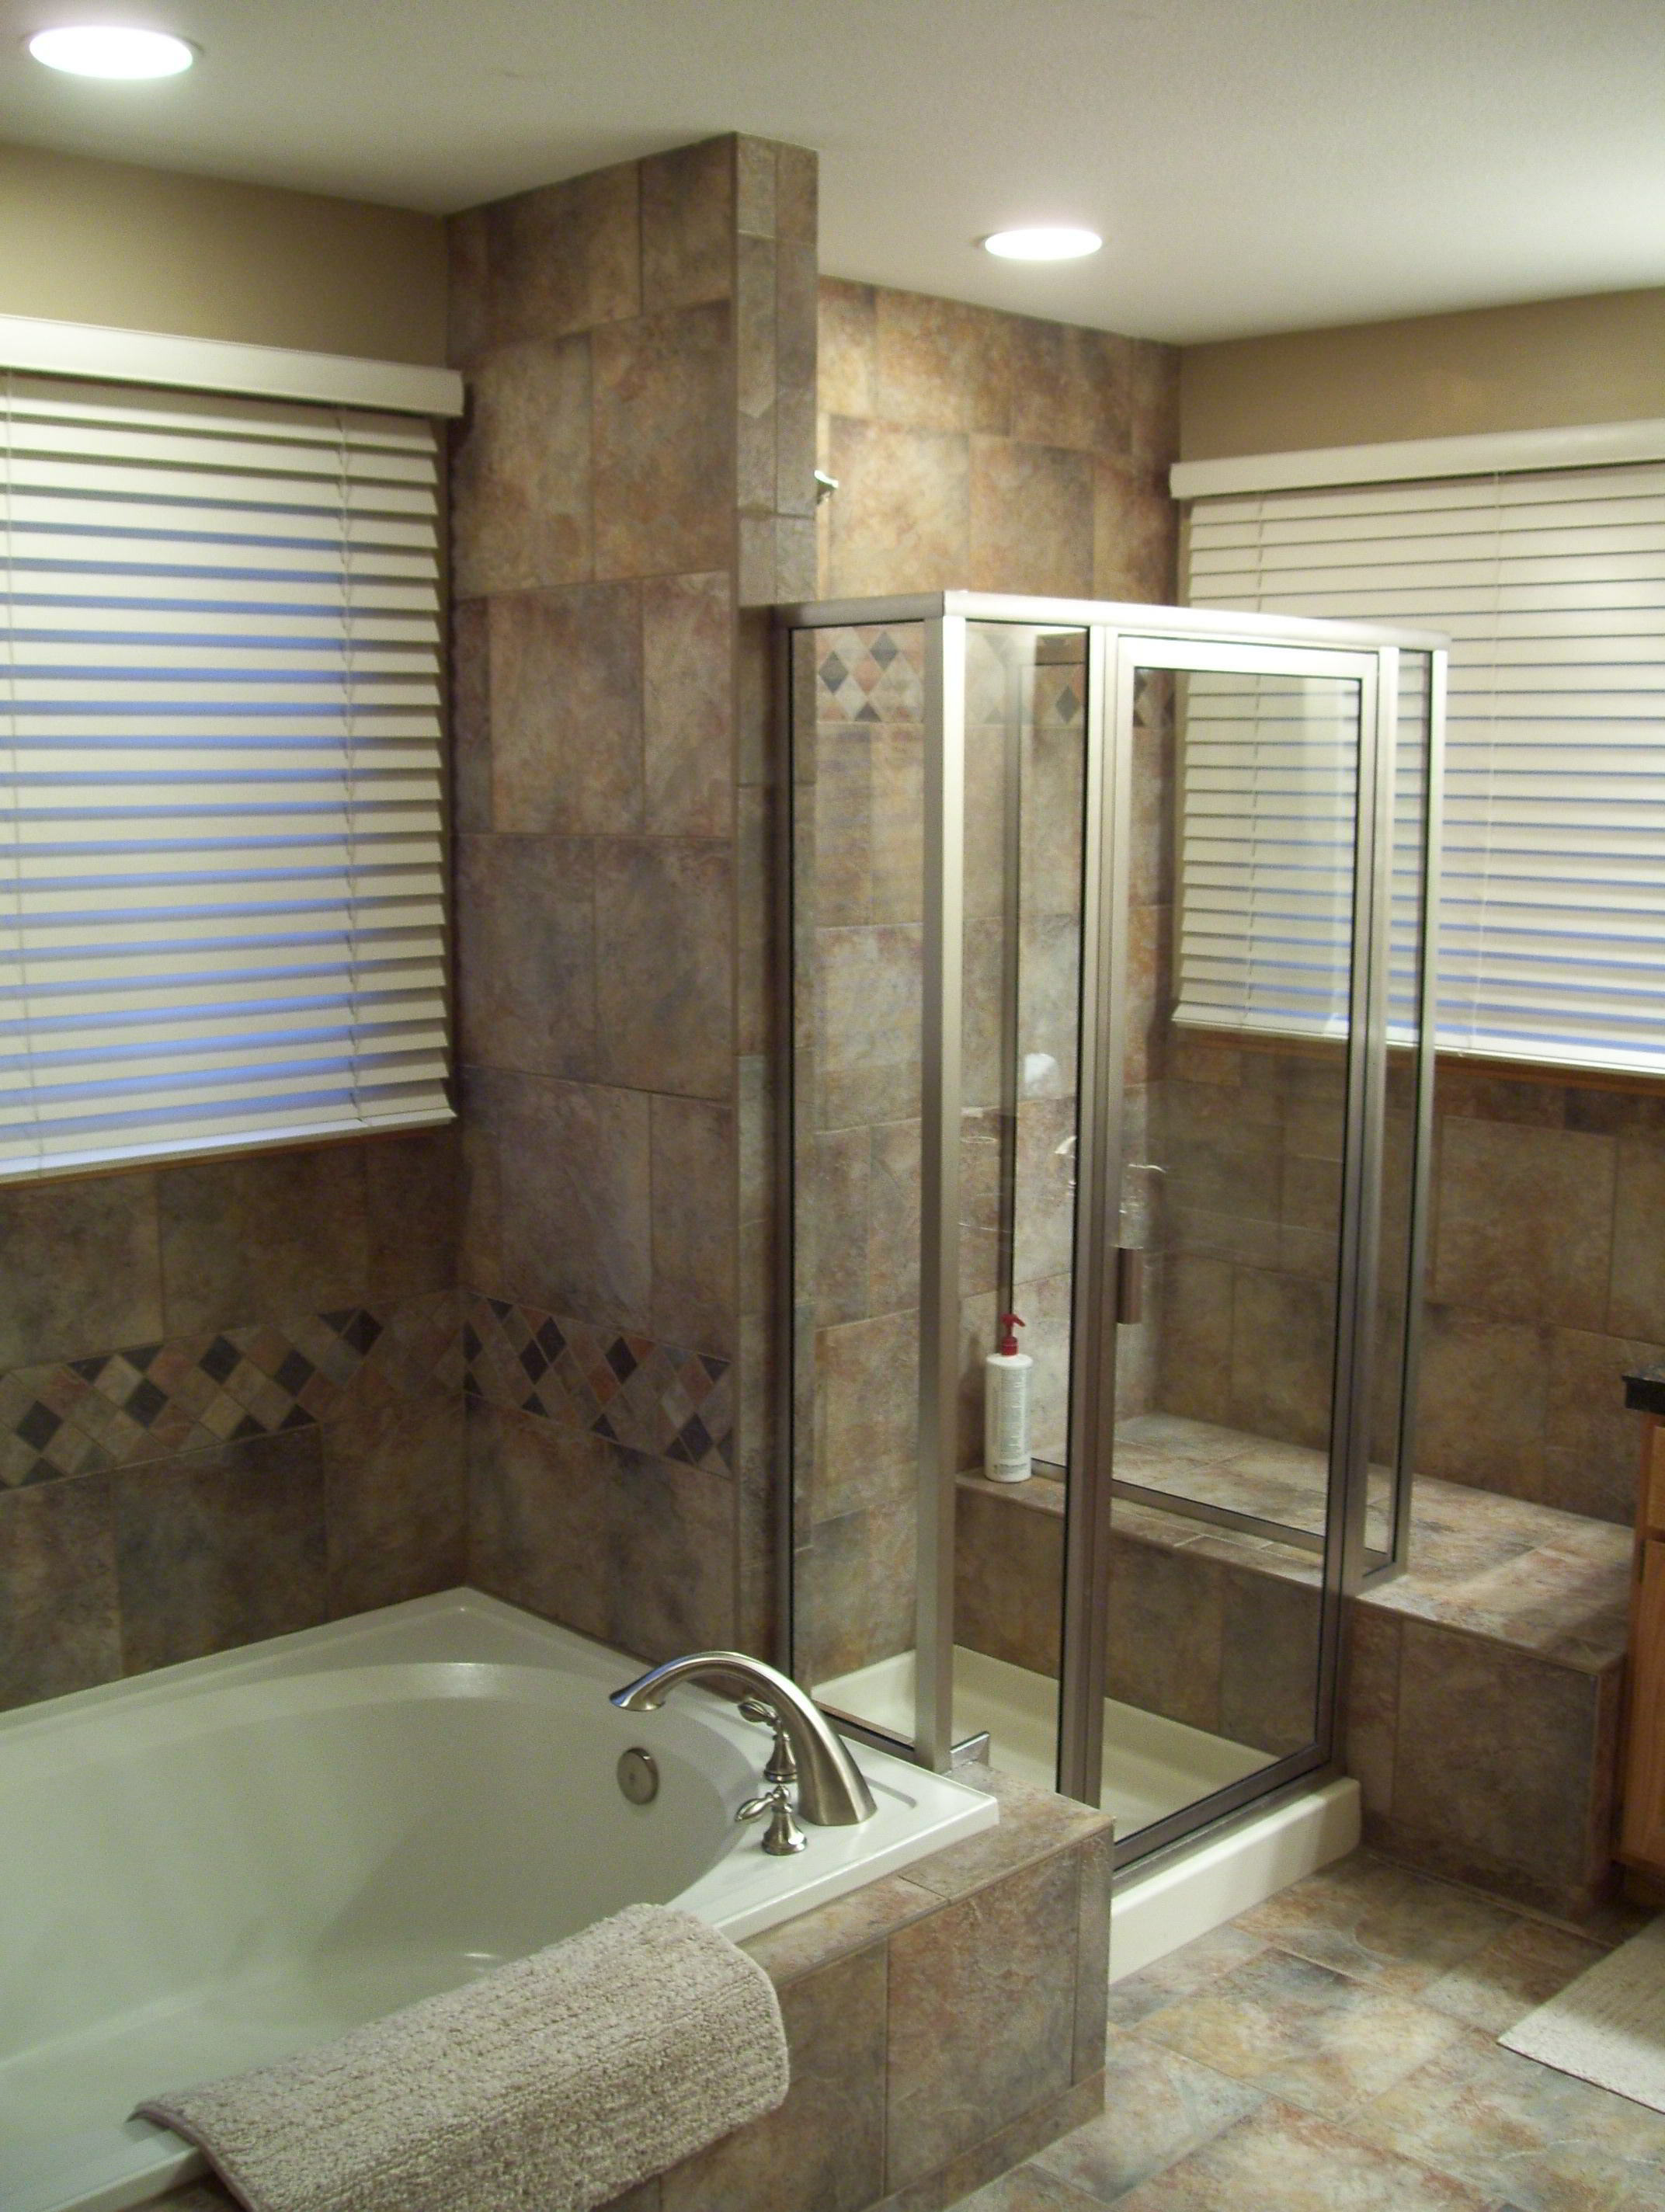 Remodeling kitchen bath basement deck littleton co for Bathroom remodel photos